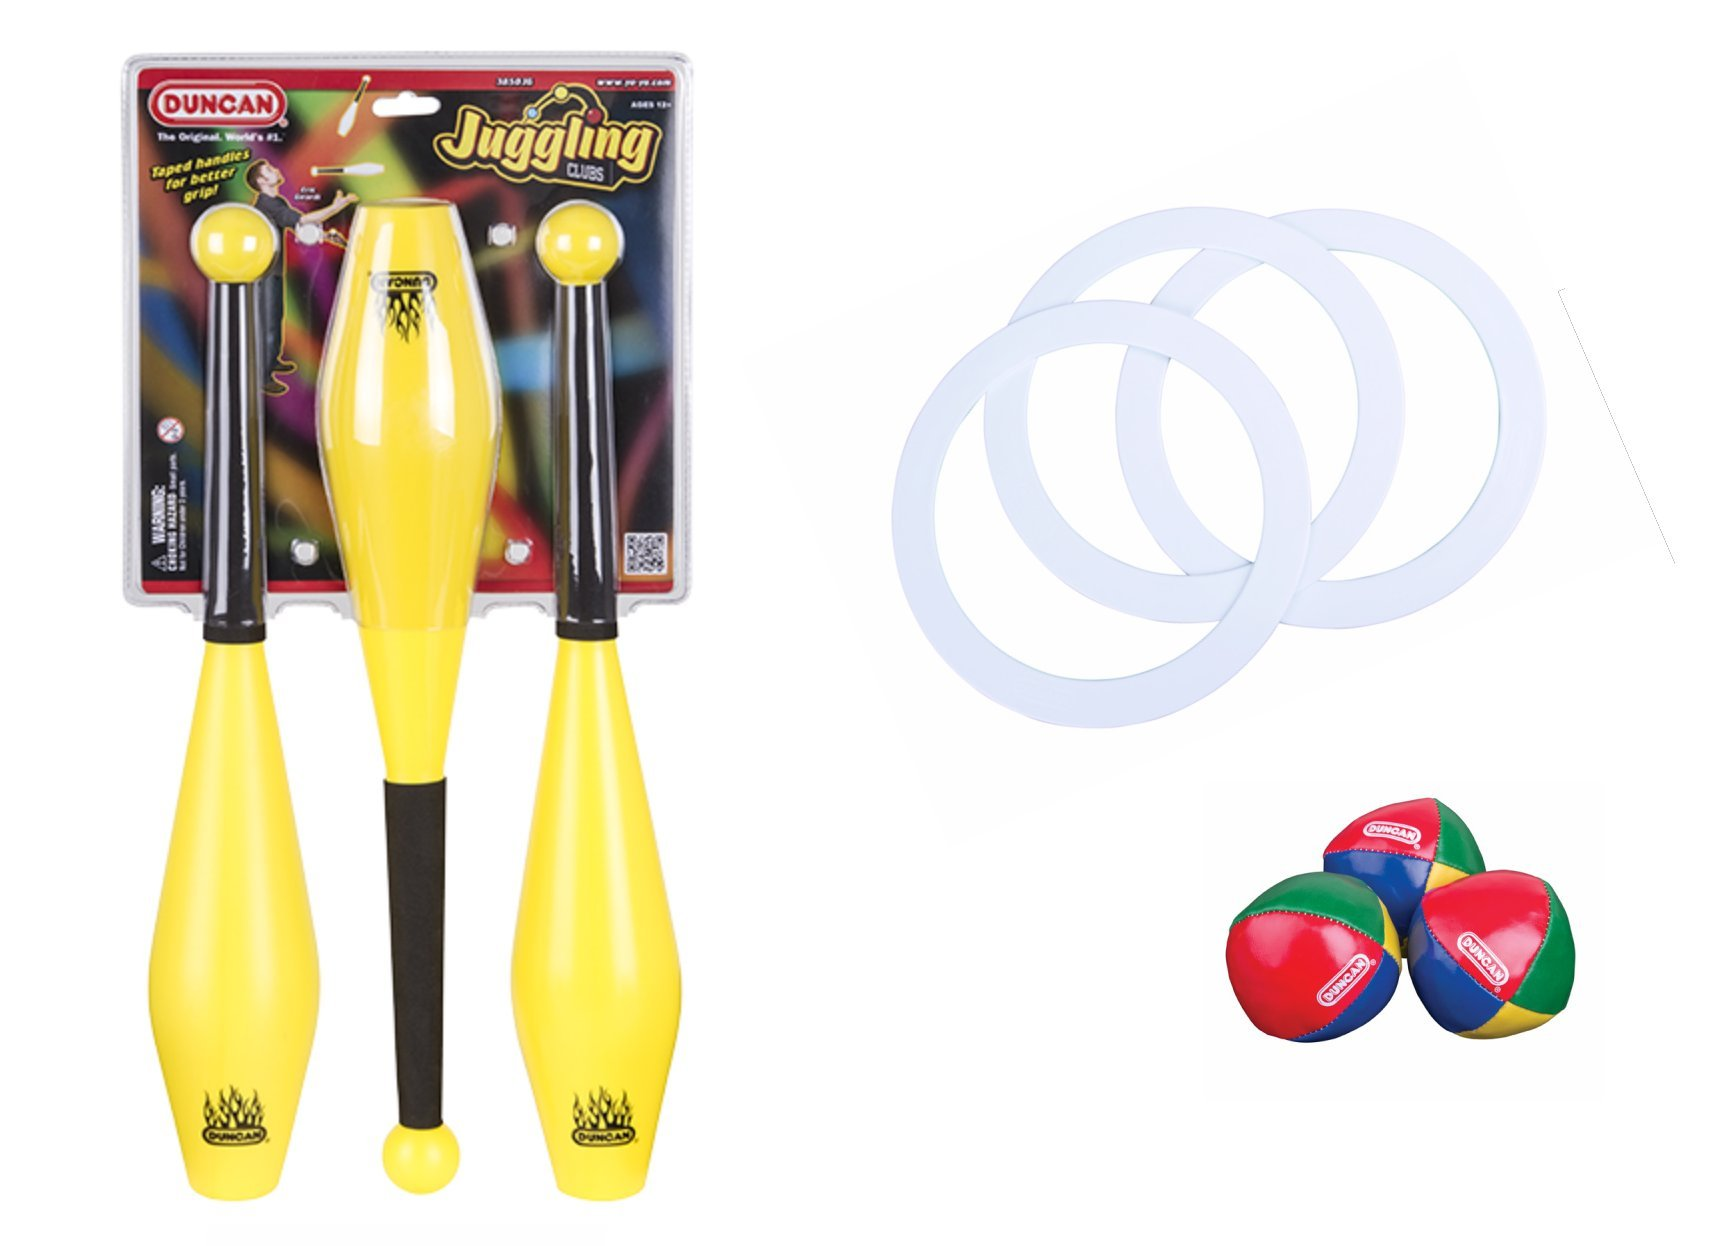 Duncan Juggling Set: Juggling Clubs, Juggling Rings, and Juggling Balls by Duncan